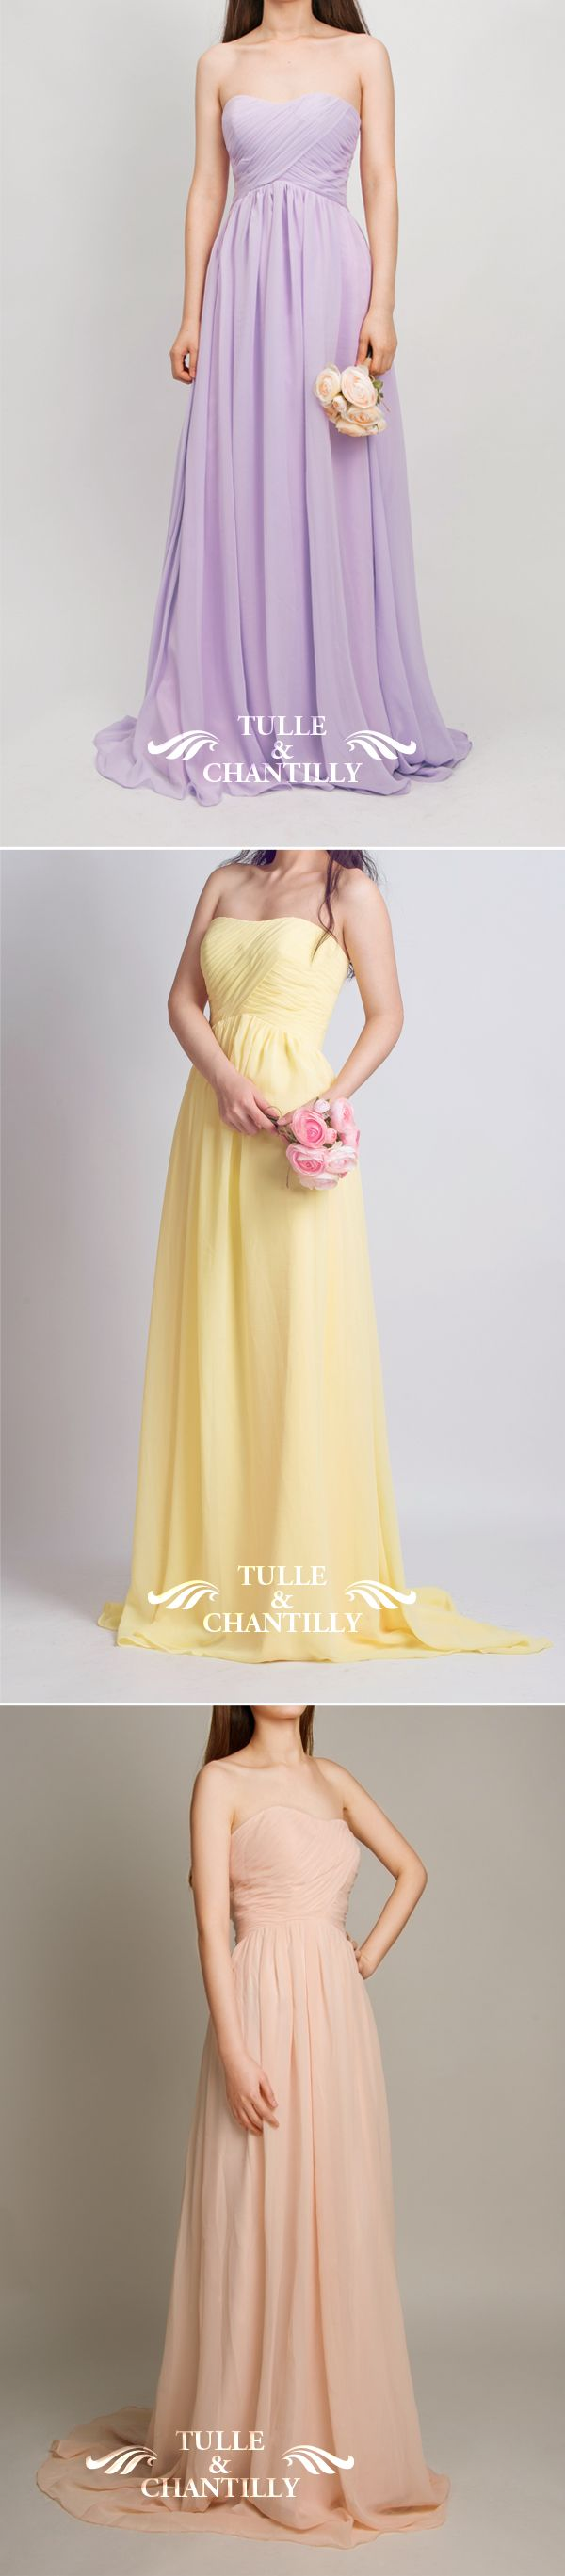 chiffon strapless bridesmaid dresses in lilac, yellow and rose